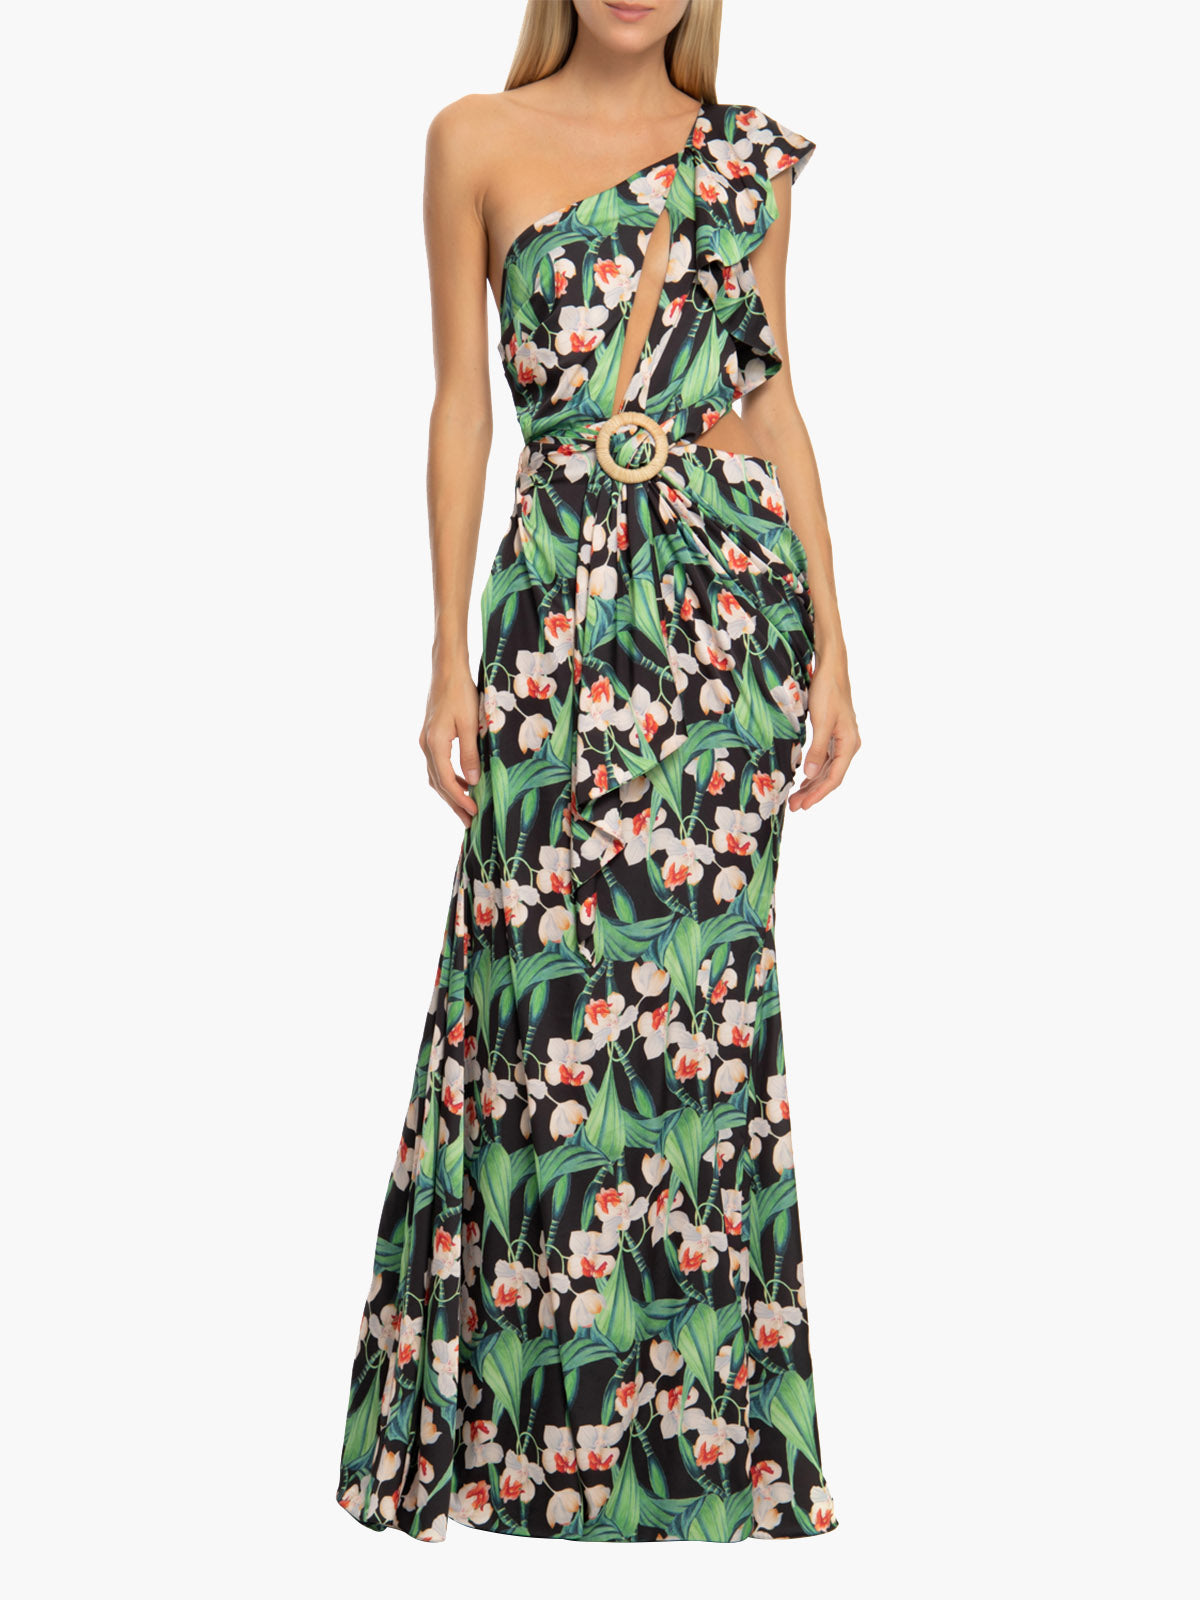 Floral One Shoulder Cutout Maxi Dress